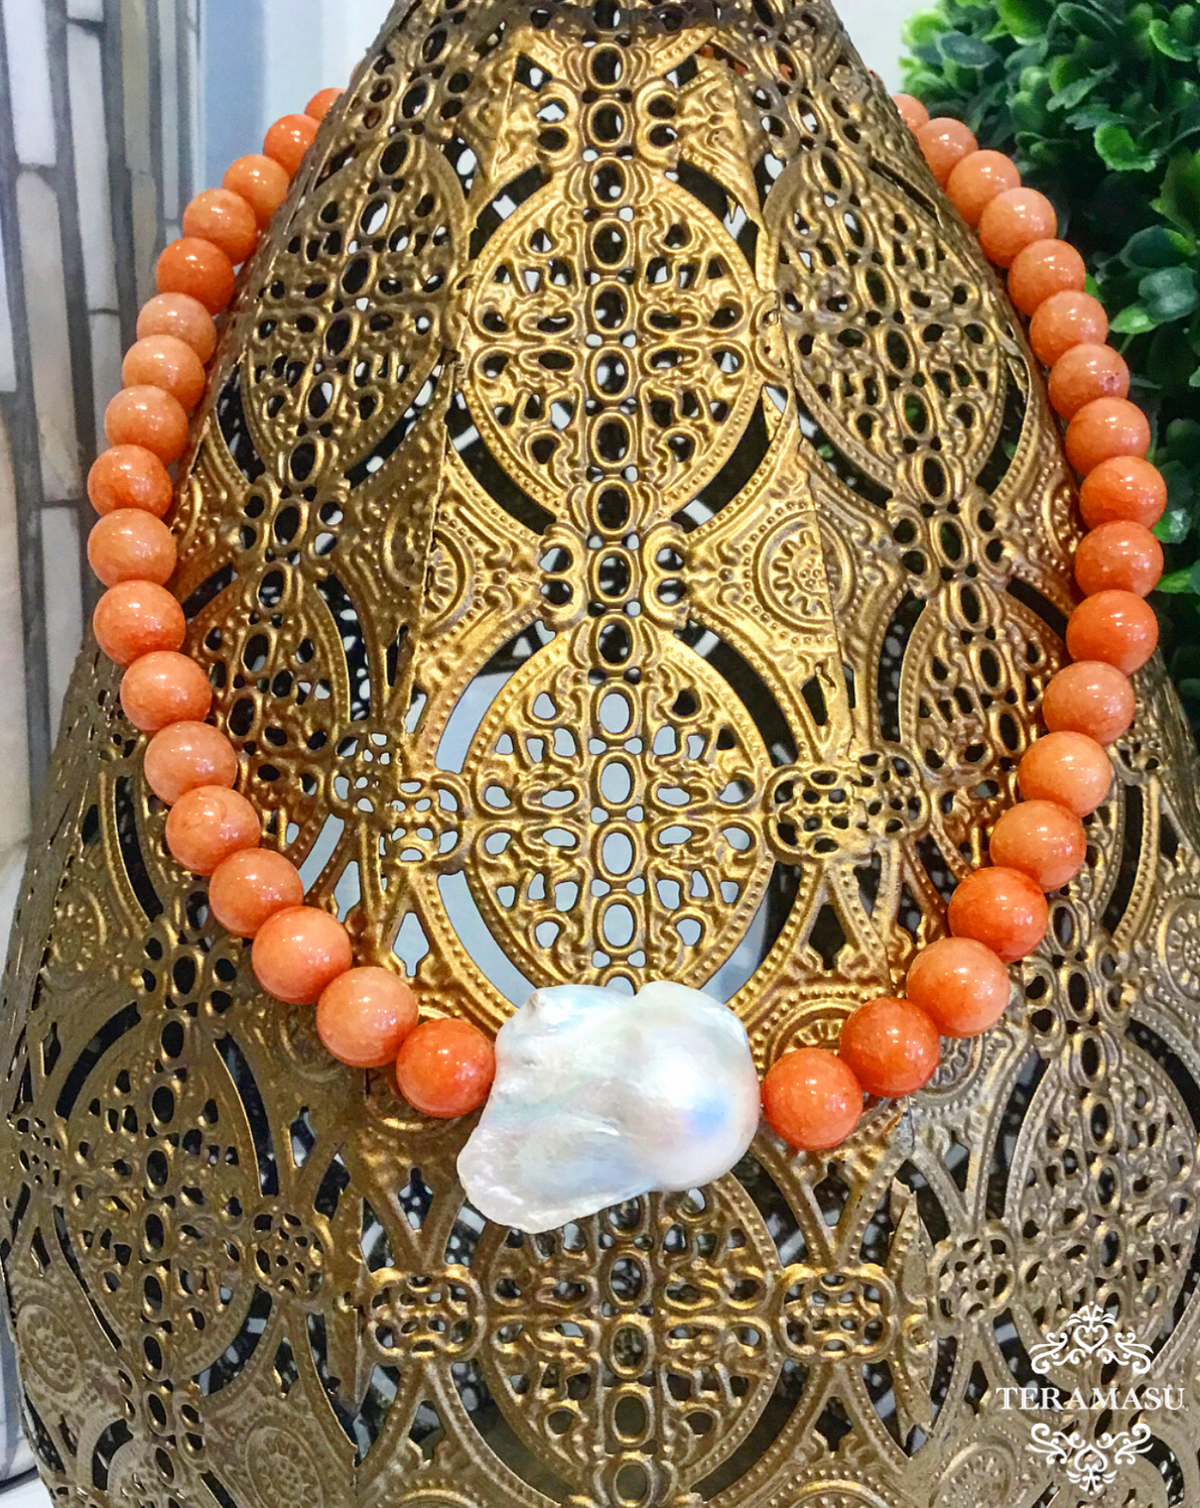 Monday Must-Have: Gorgeous & New, Handmade Designer Teramasu Coral Agate and Baroque Pearl Necklace